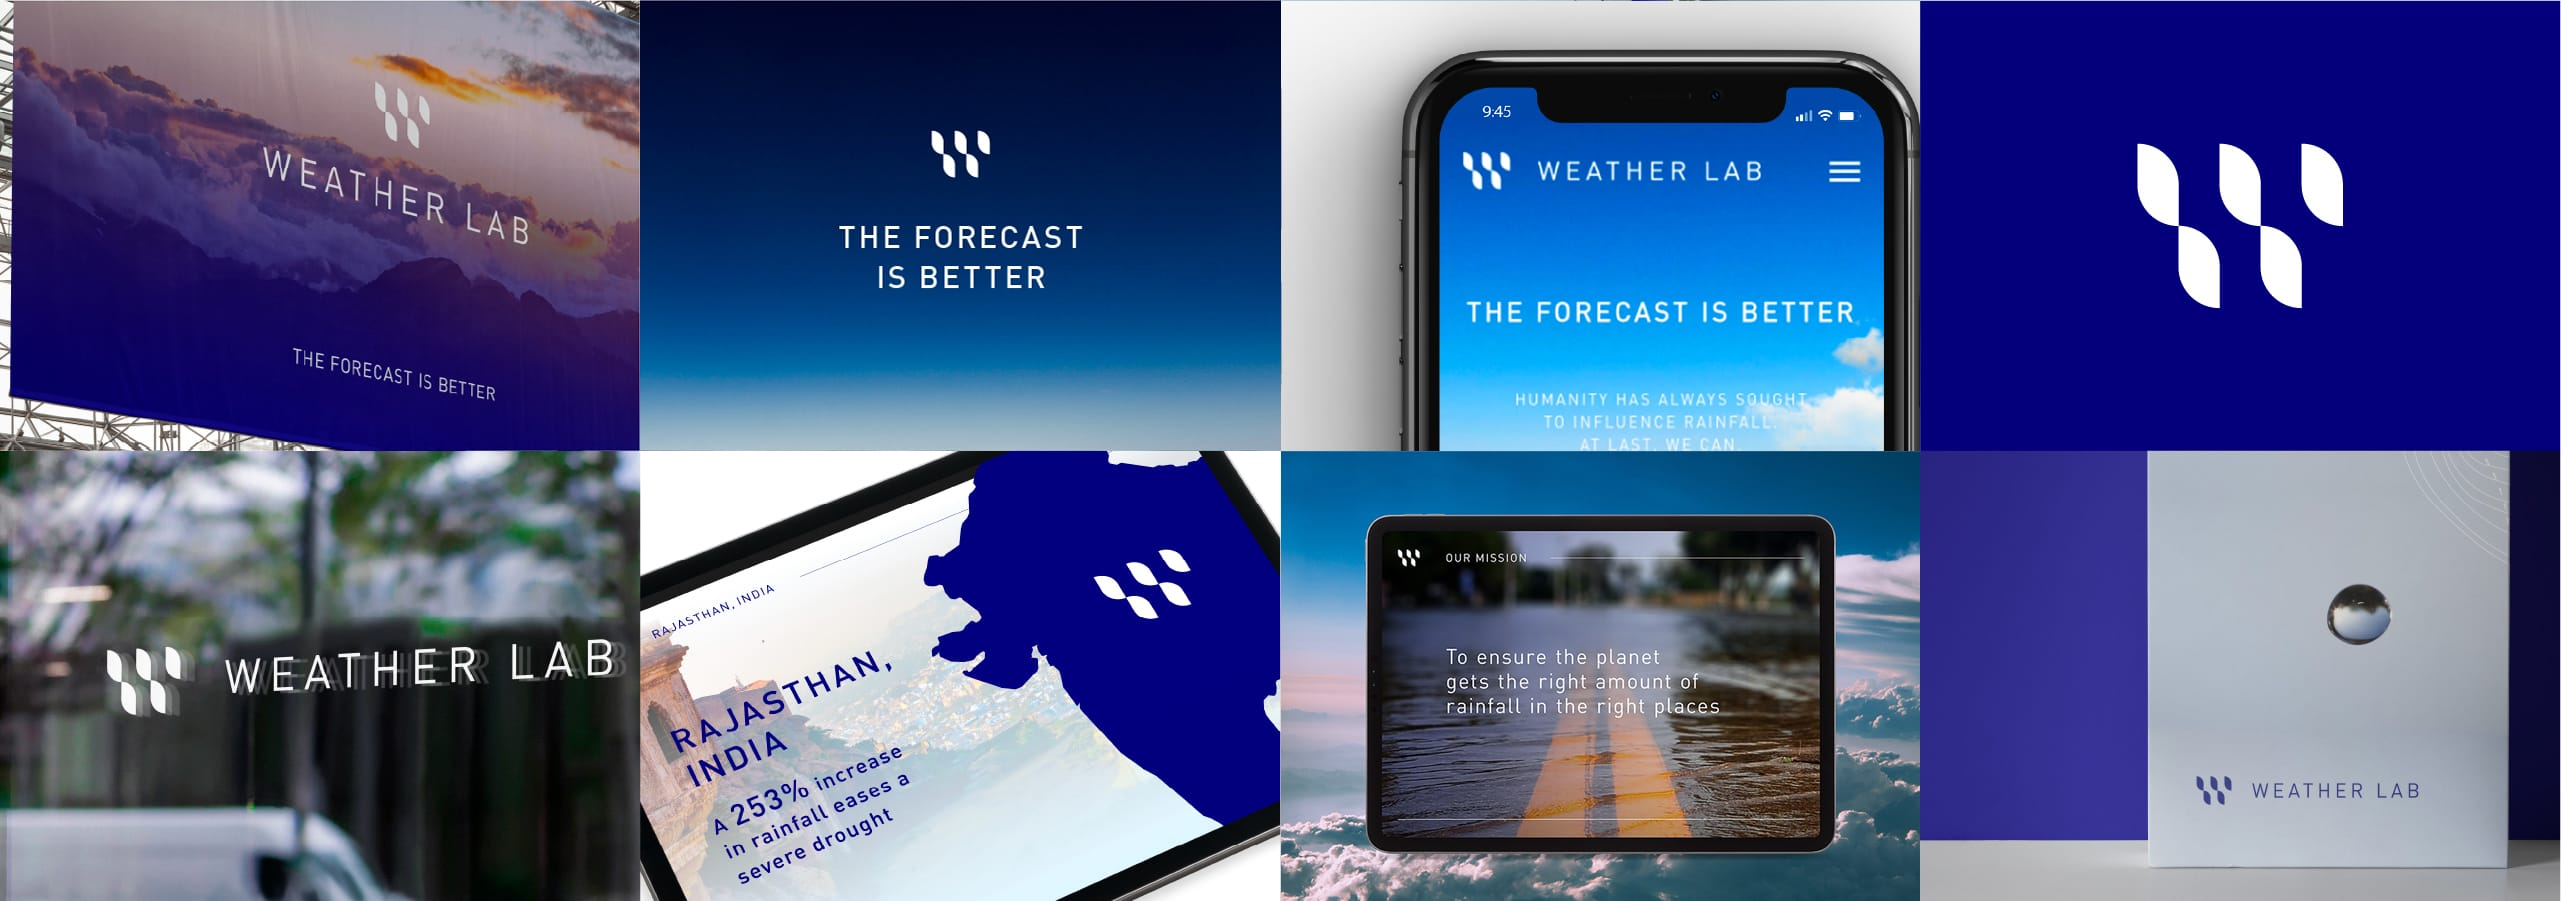 Weather Lab - 12anew - Natie Branding Agency